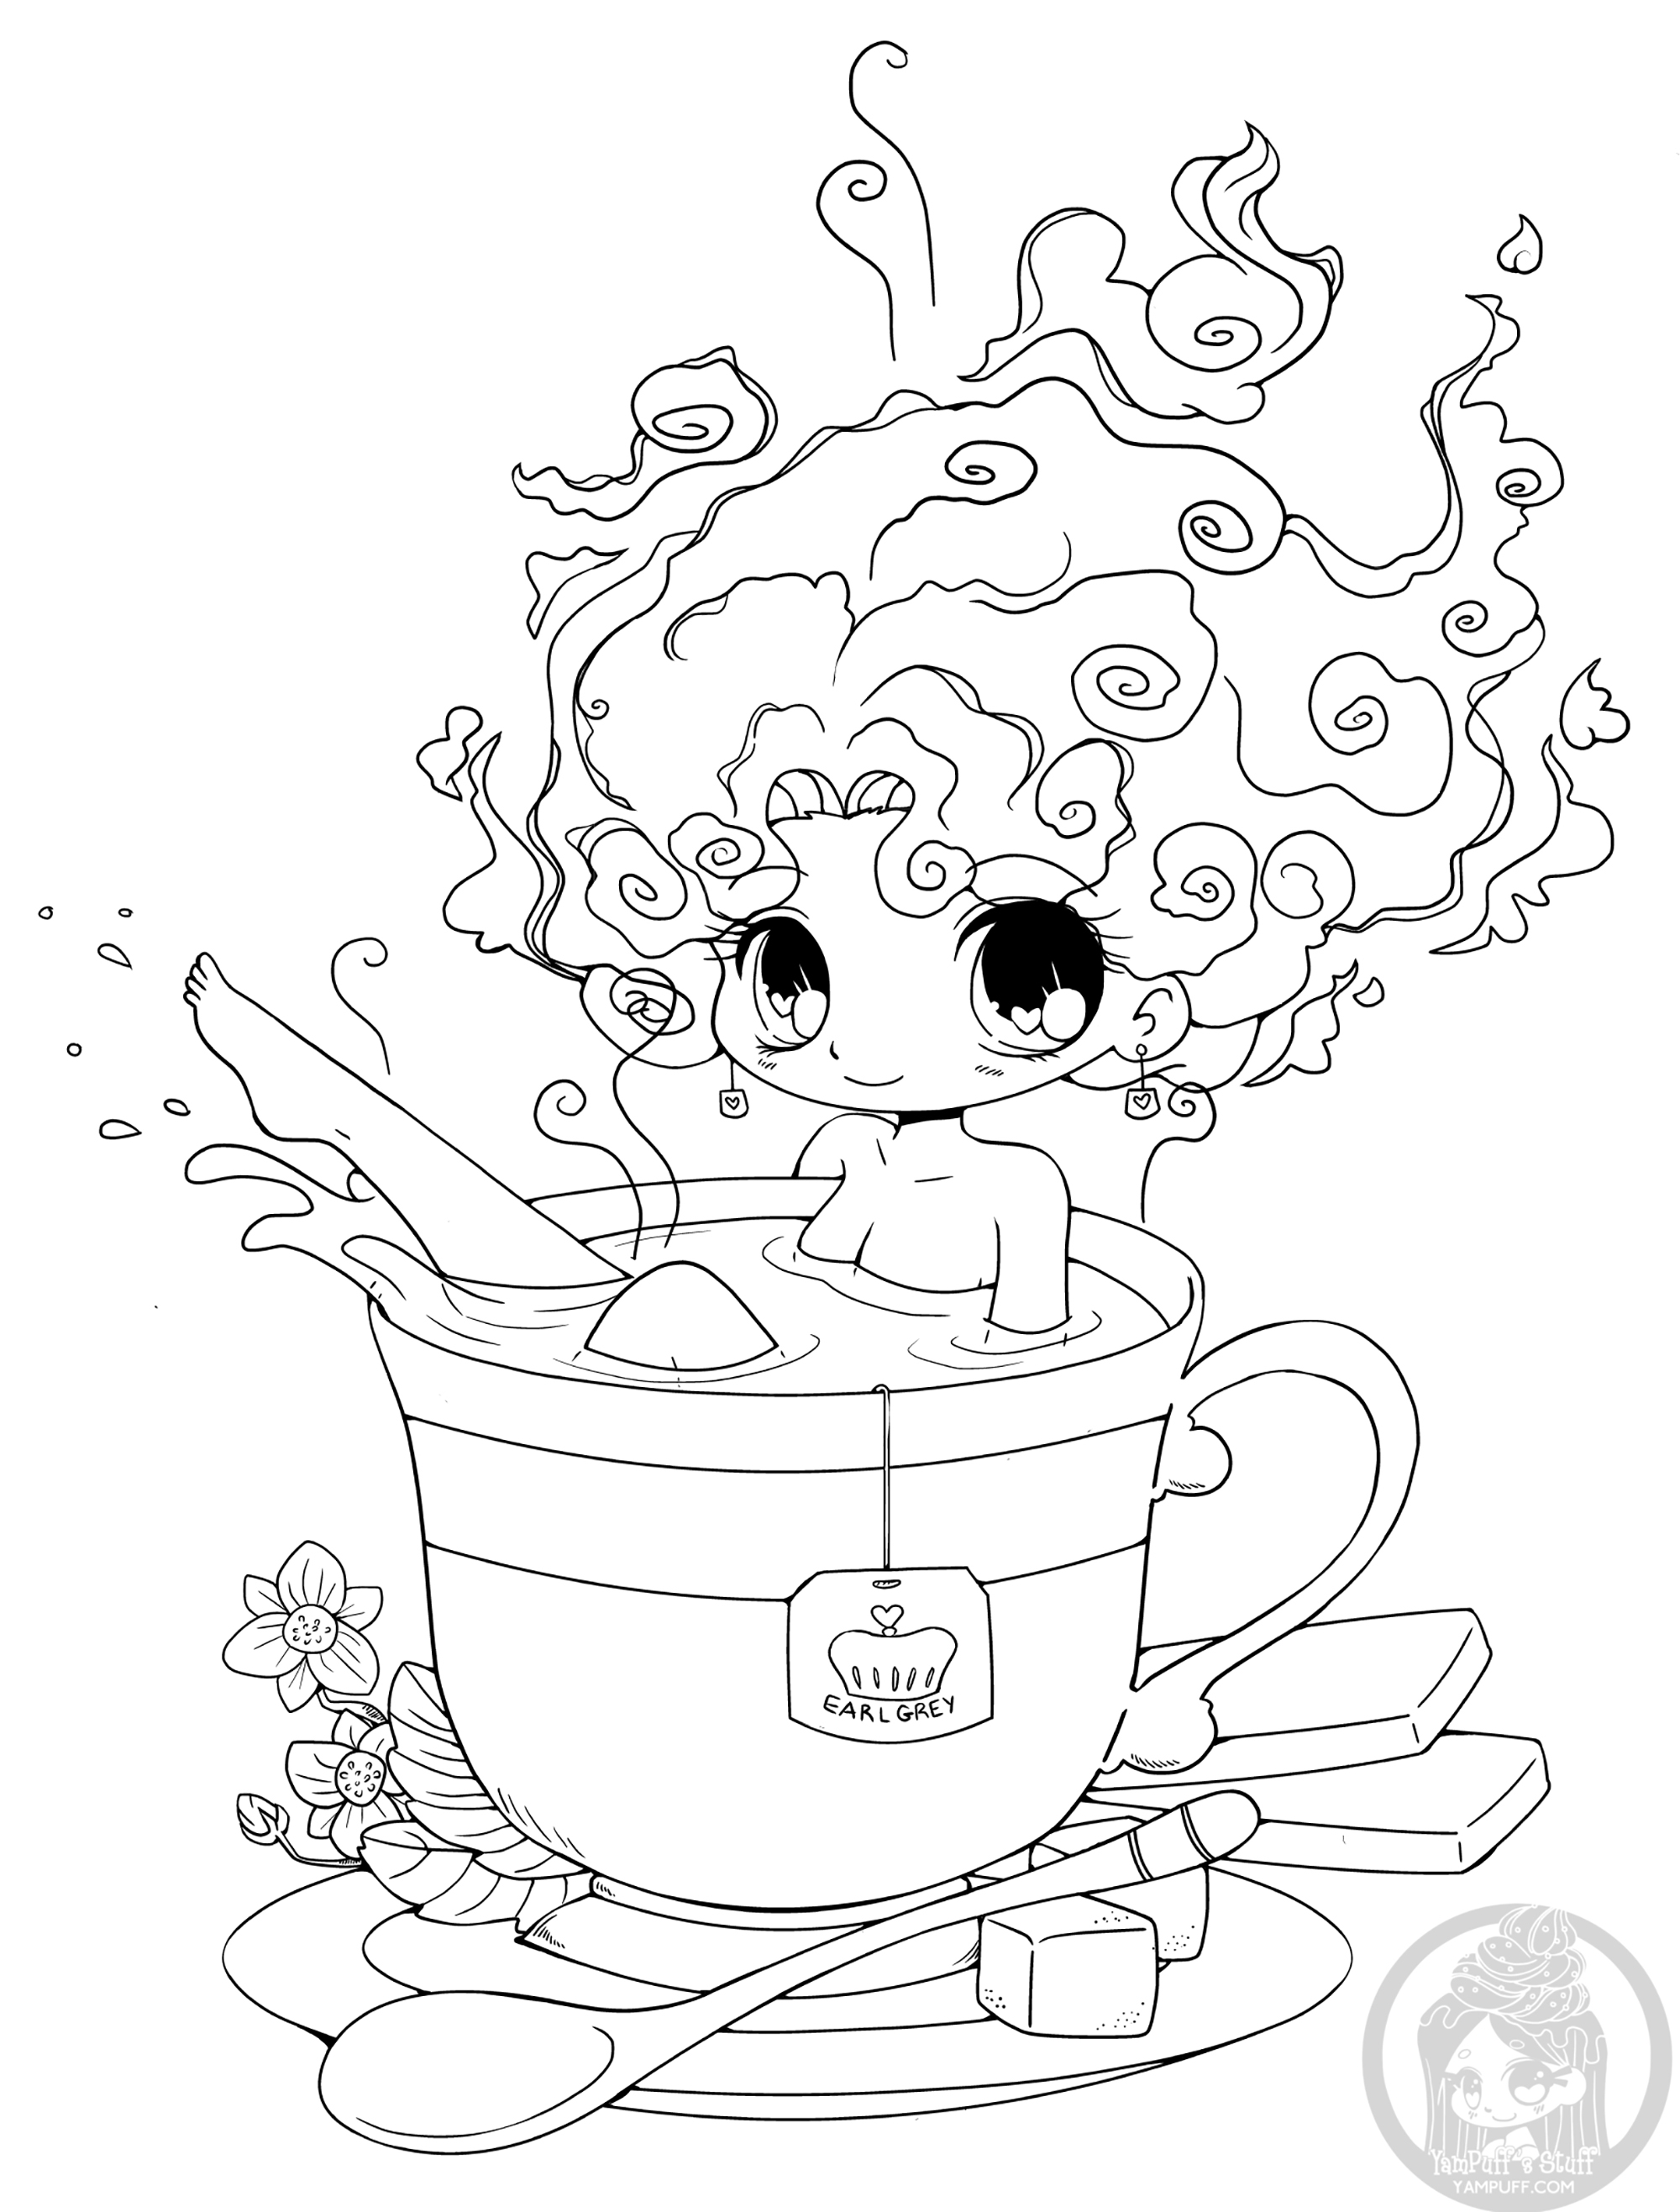 coloring pages for kids kawaii kawaii coloring pages best coloring pages for kids for kawaii kids coloring pages